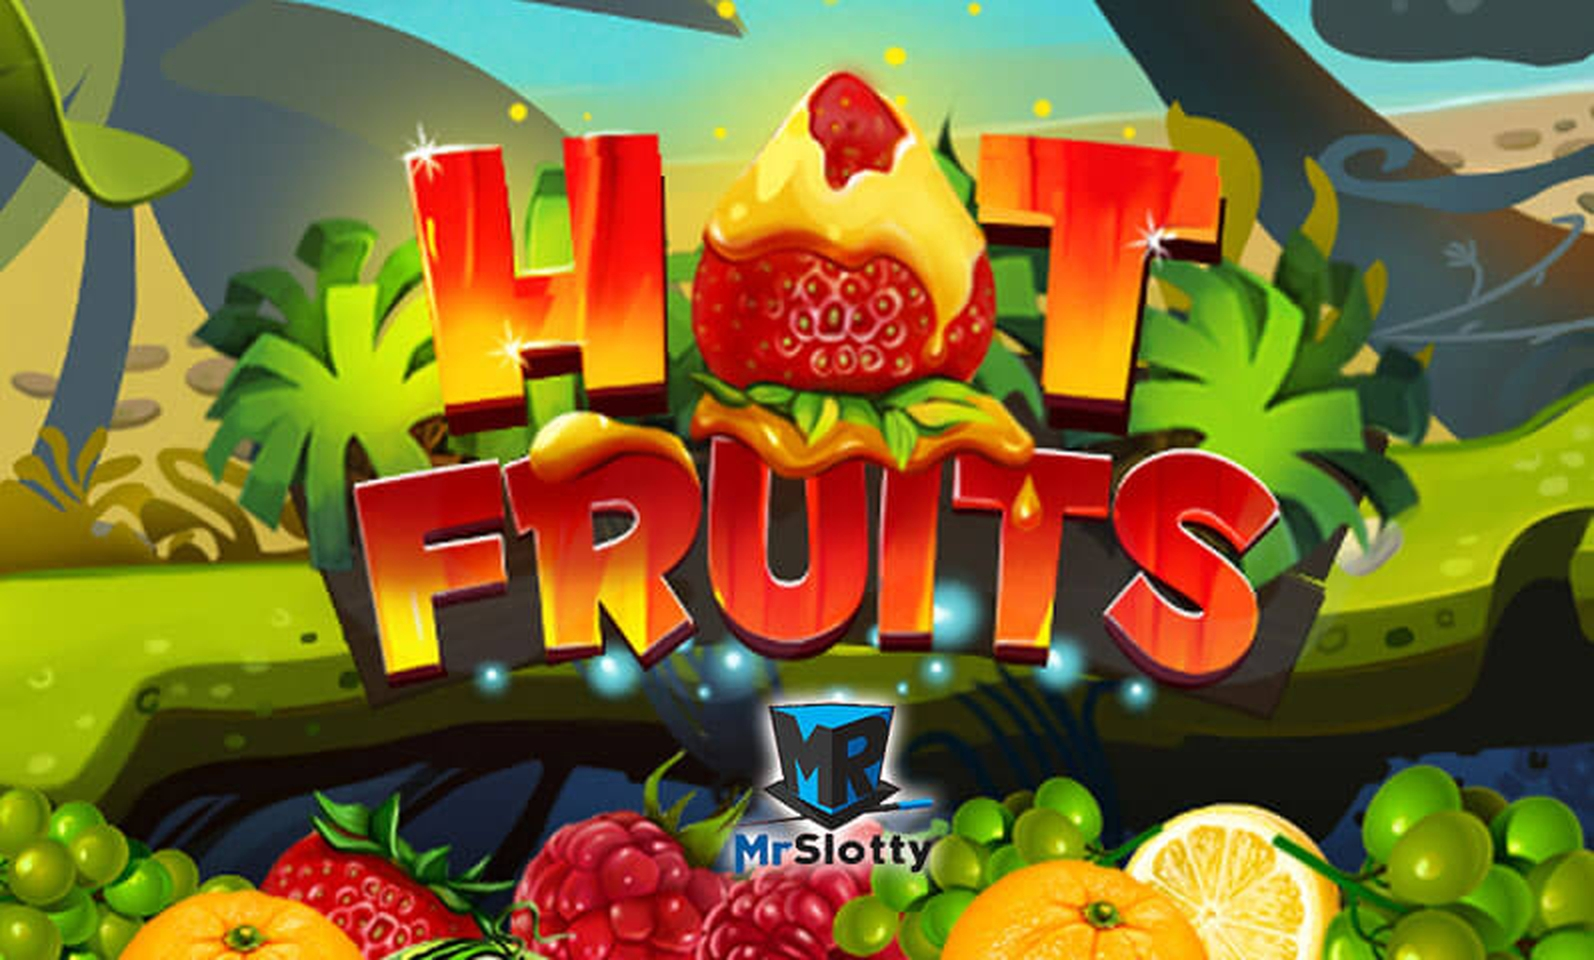 The Hot Fruits (MrSlotty) Online Slot Demo Game by Mr Slotty